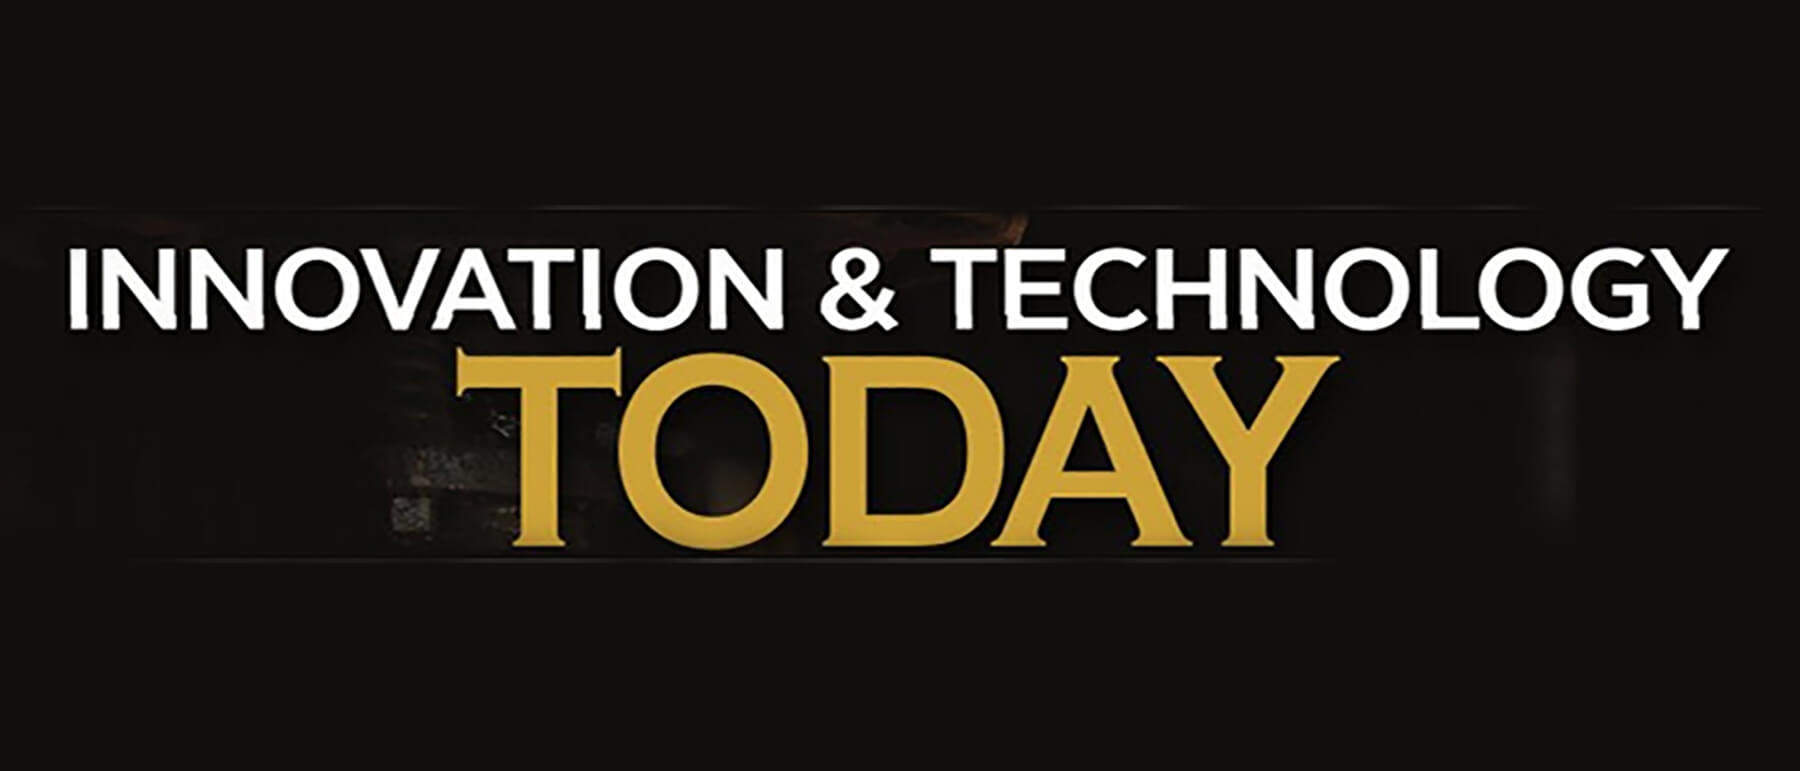 K-Tor in Innovation & Technology Today